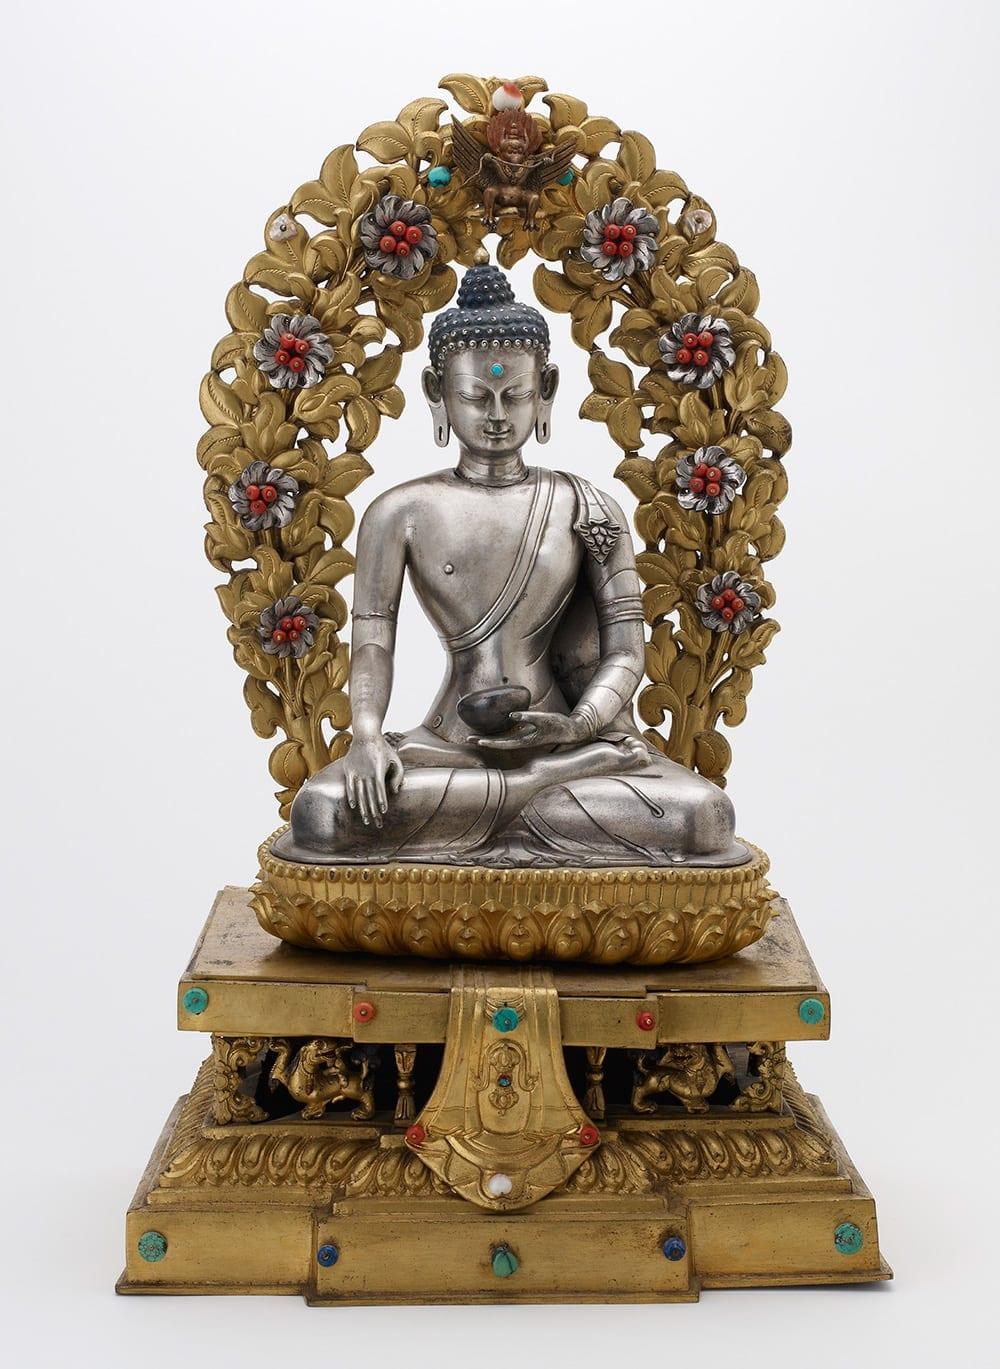 Shakyamuni Buddha in a Full Shrine  Qing; probably Dolonnor Second half of the 18th to early 19th century Silver repoussé image with turquoise urna; flora mandorla with leaves of gilt copper and flowers of silver with coral and mother-of-pearl; a solid cast garuda bird at the peak; heavily gilded bronze lotus seat and base with inset turquoise, coral, and lapis lazuli; base sealed with a copper plate incised with a double vajra; contents inside.  Photo courtesy of The Freer Gallery of Art and Arthur M. Sackler Gallery, Smithsonian Institution. From The Alice S. Kandell Collection.